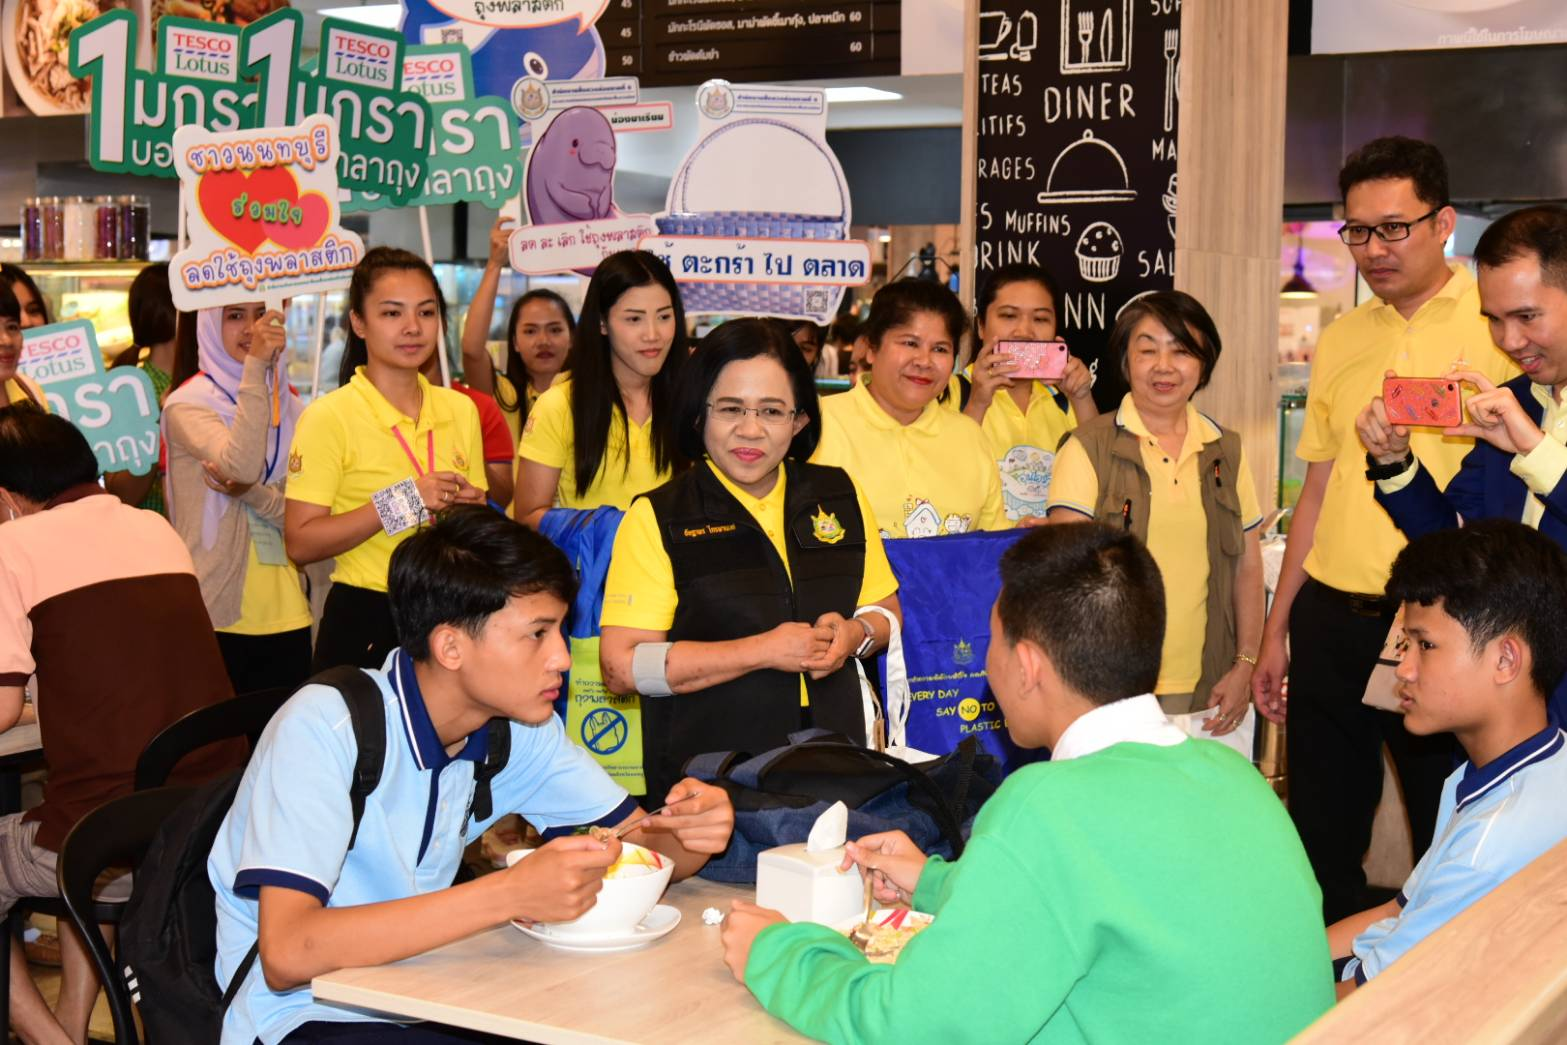 """Ministry of Natural Resources and Environment is walking forward the campaign """"Do Good Deeds with the Heart, Reduce Receiving, Reduce Giving Reduce Using Plastic Bags,"""" The D-Day is 1 January 2020 to stop receiving, giving, and using single-use"""